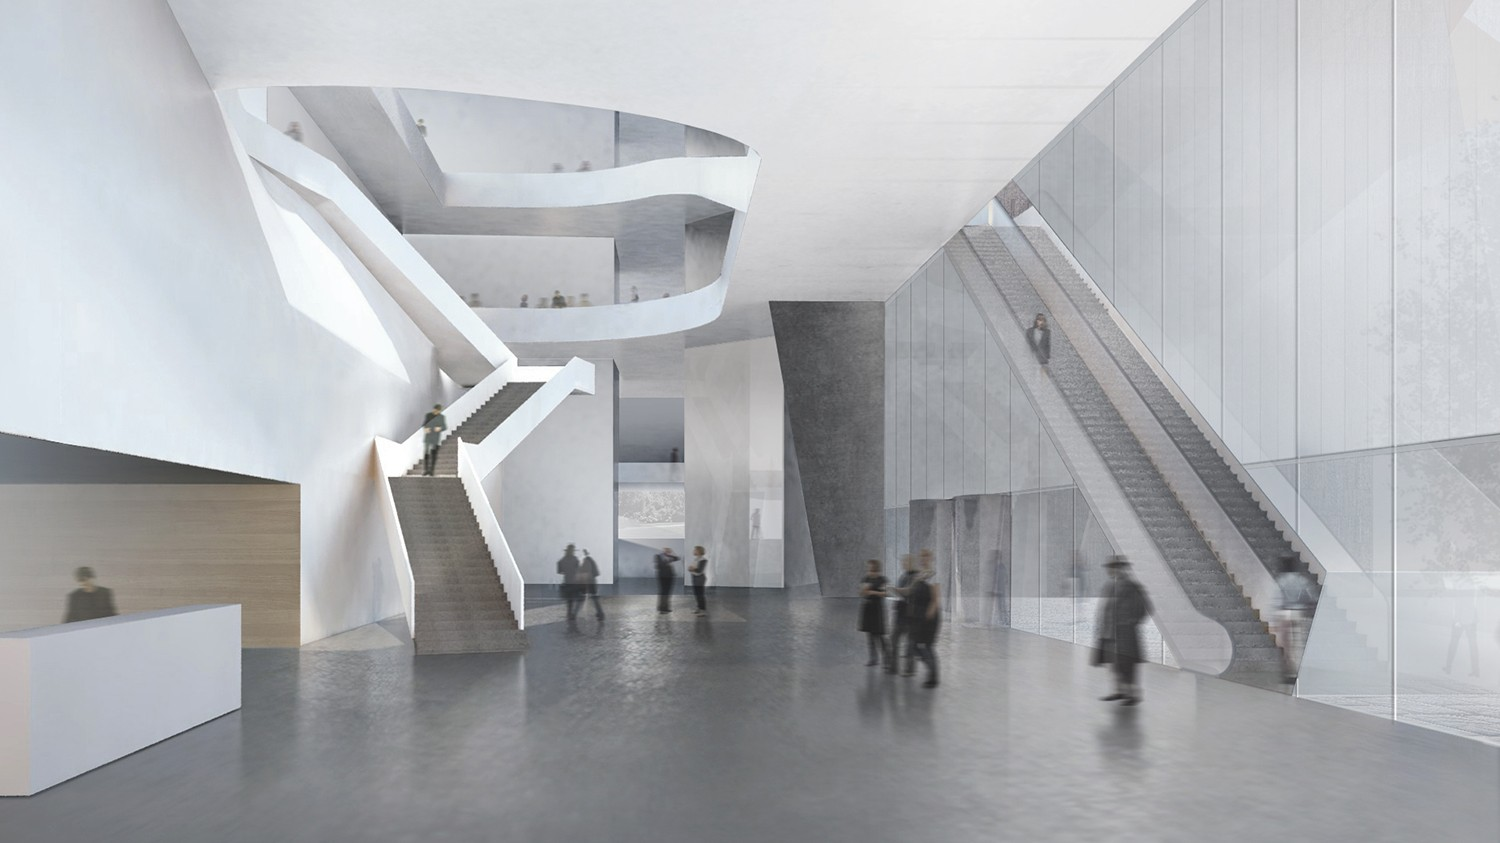 https://s3.us-east-2.amazonaws.com/steven-holl/uploads/projects/project-images/StevenHollArchitects_NCCA_lobby_WH.jpg